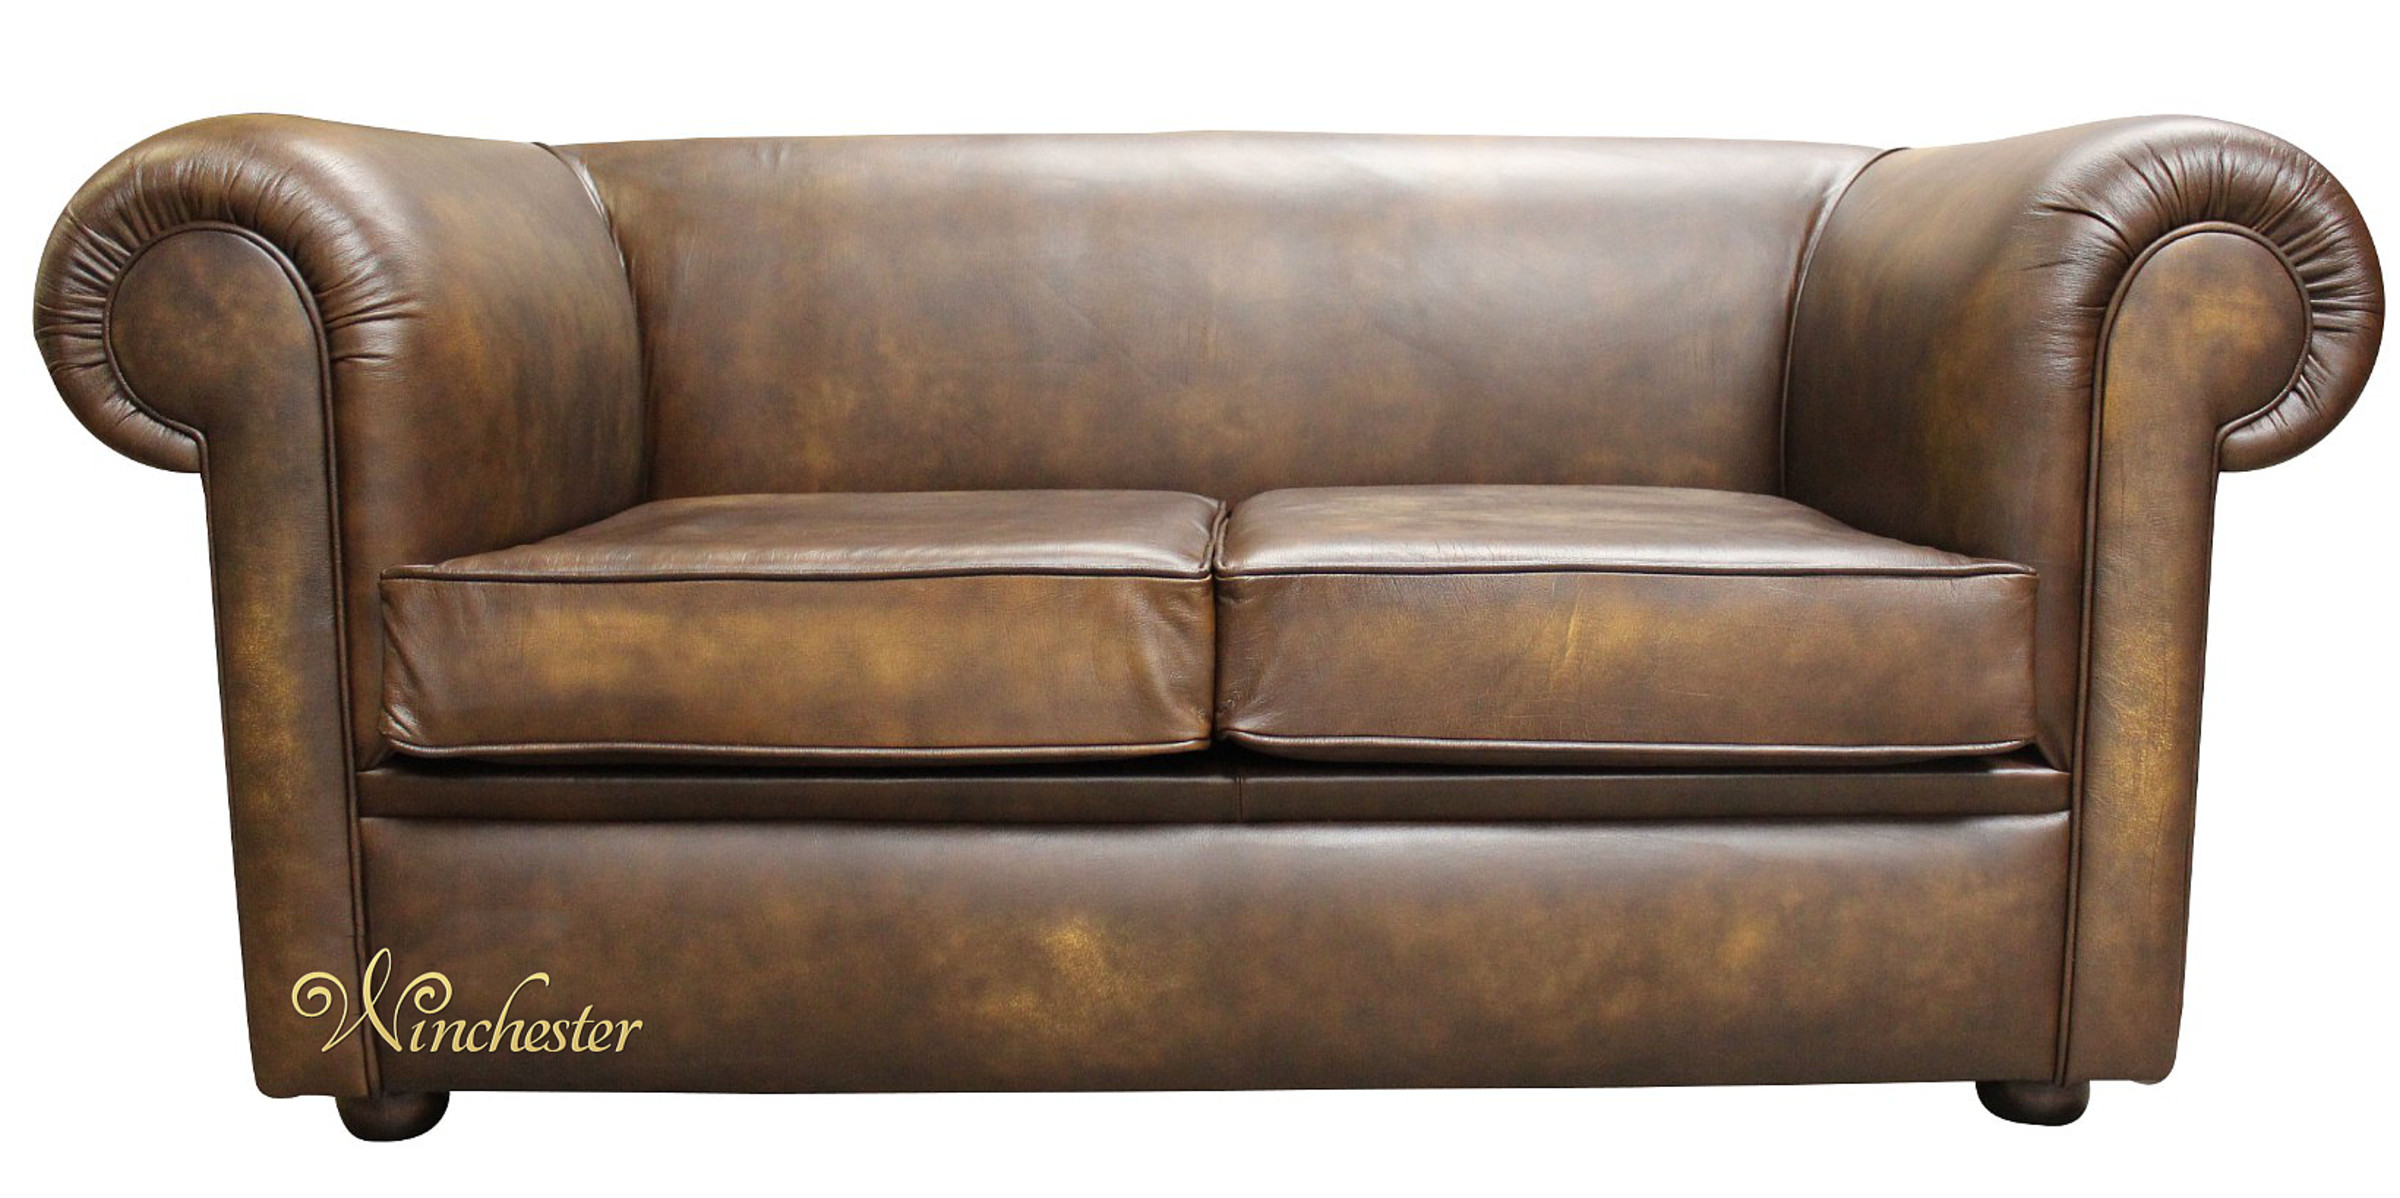 Chesterfield 1930 S 2 Seater Settee Antique Gold Leather Sofa